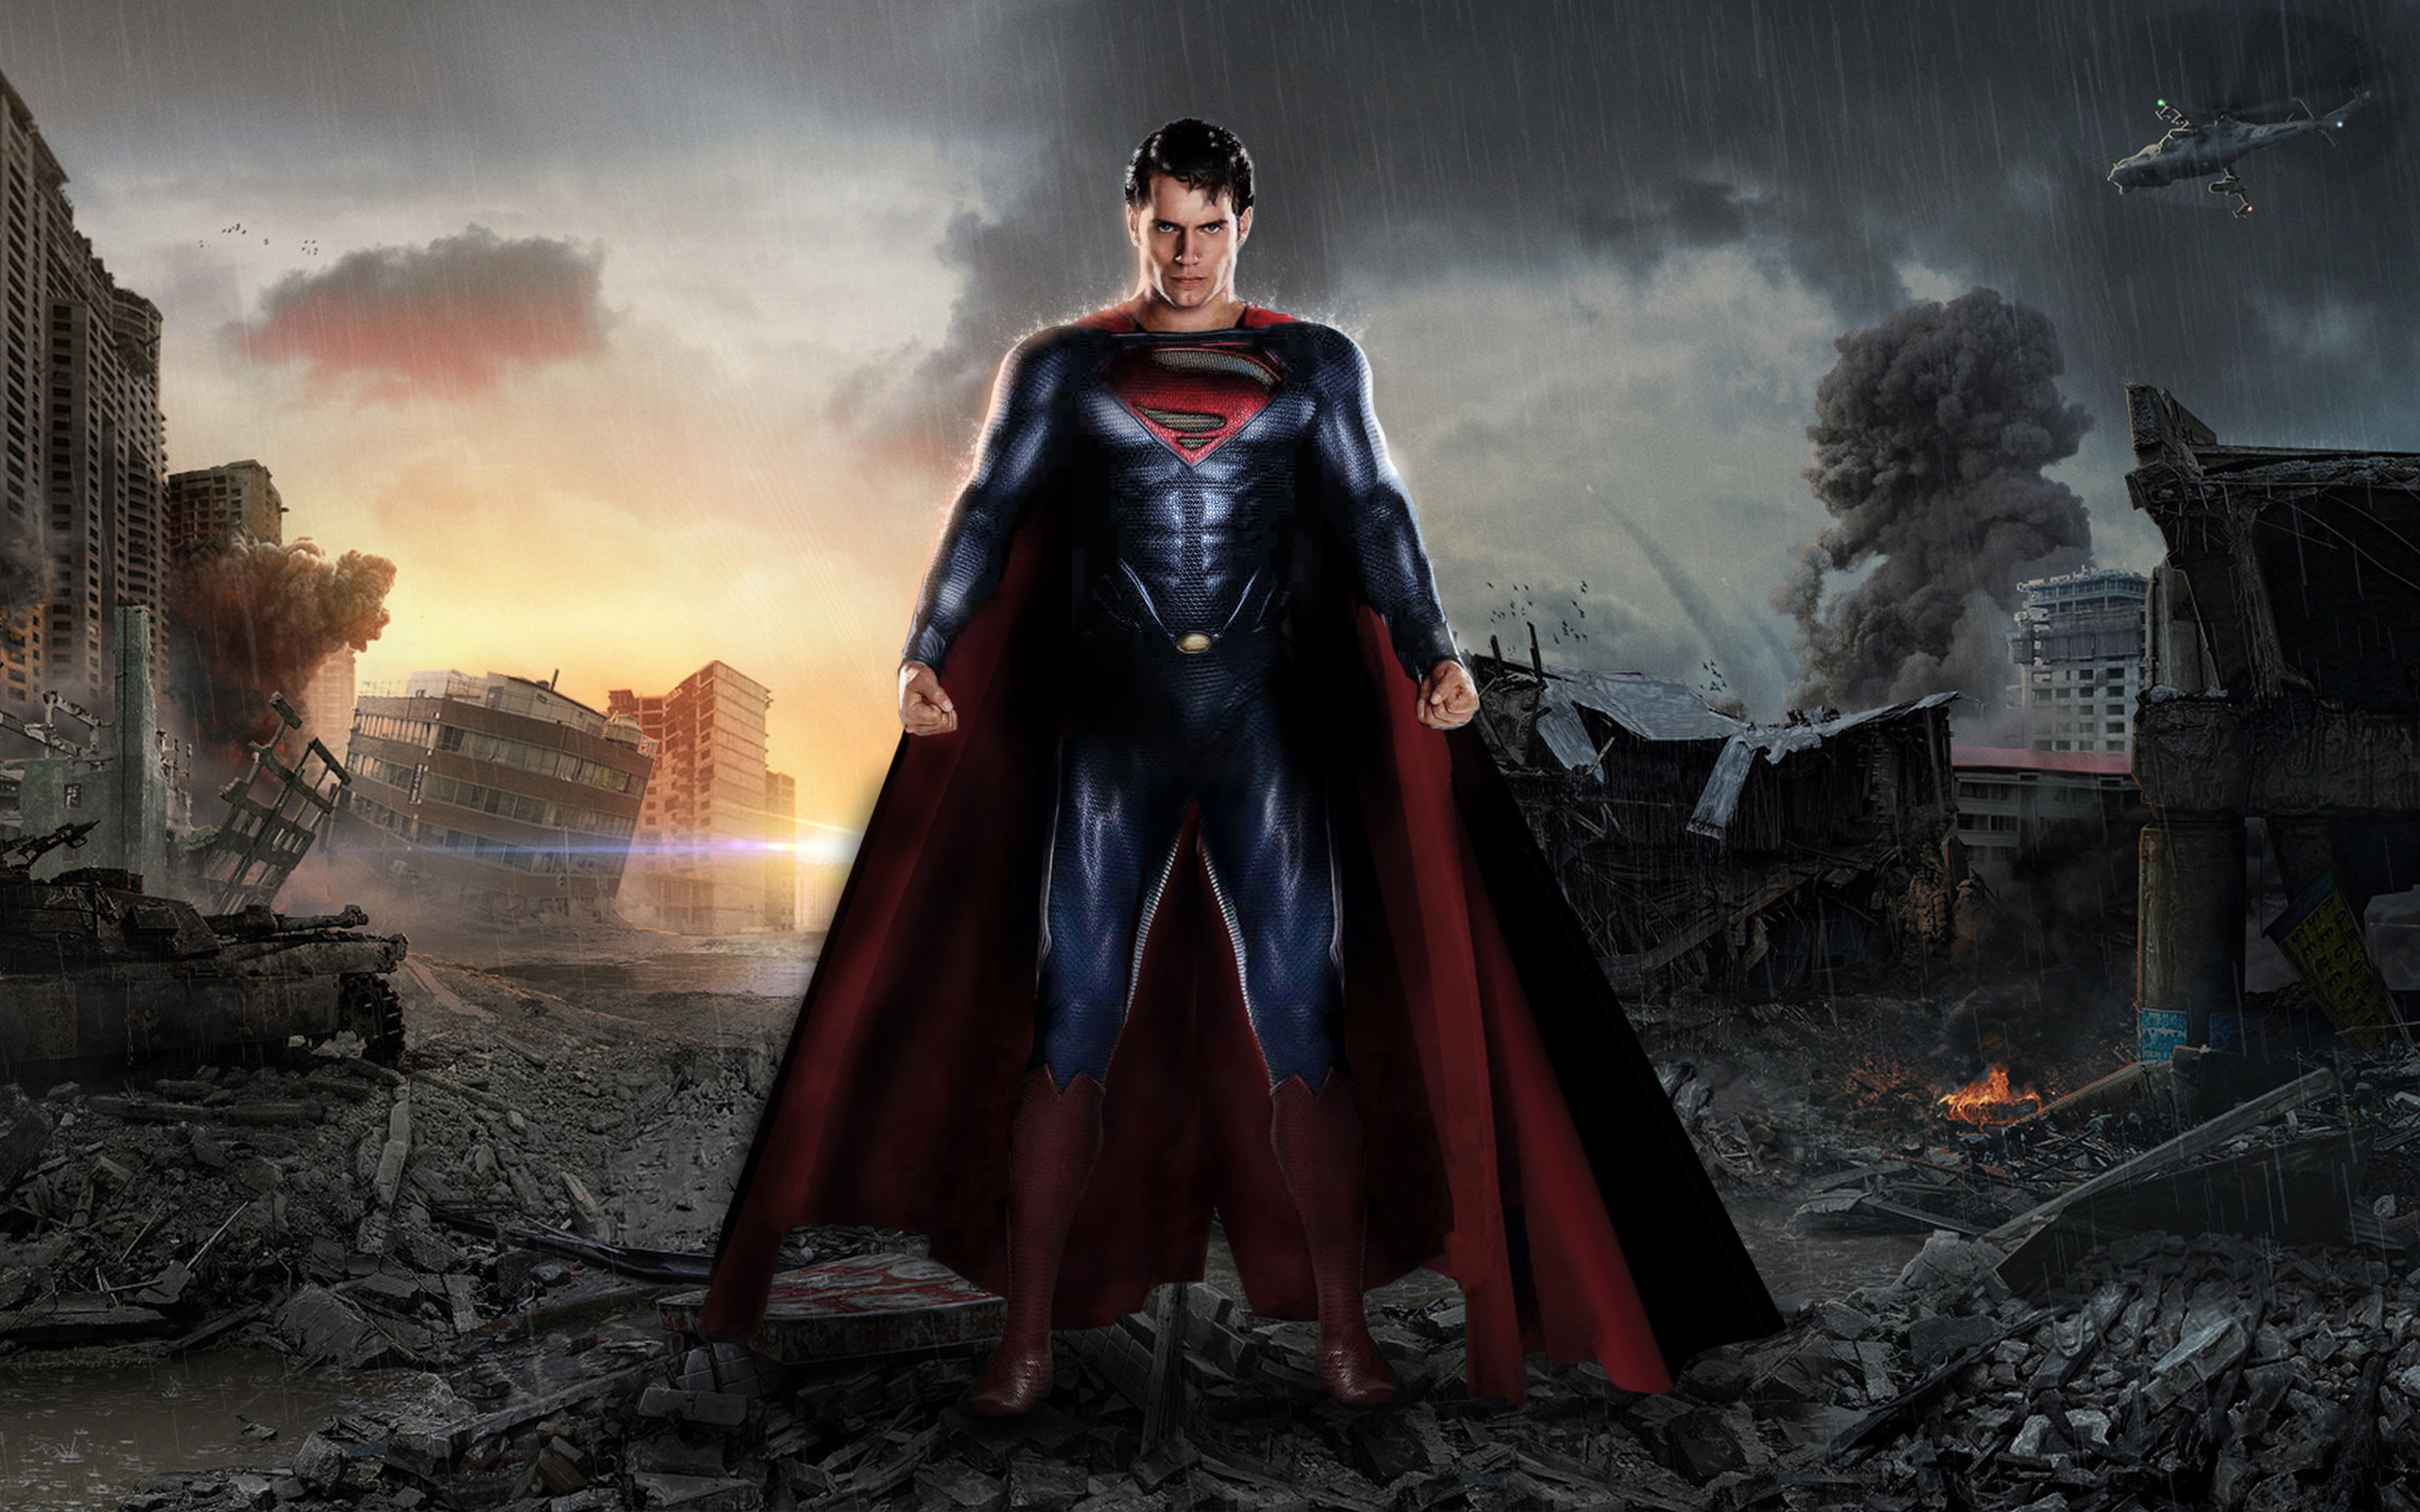 High Resolution Wallpaper | The Man Of Steel 2560x1600 px